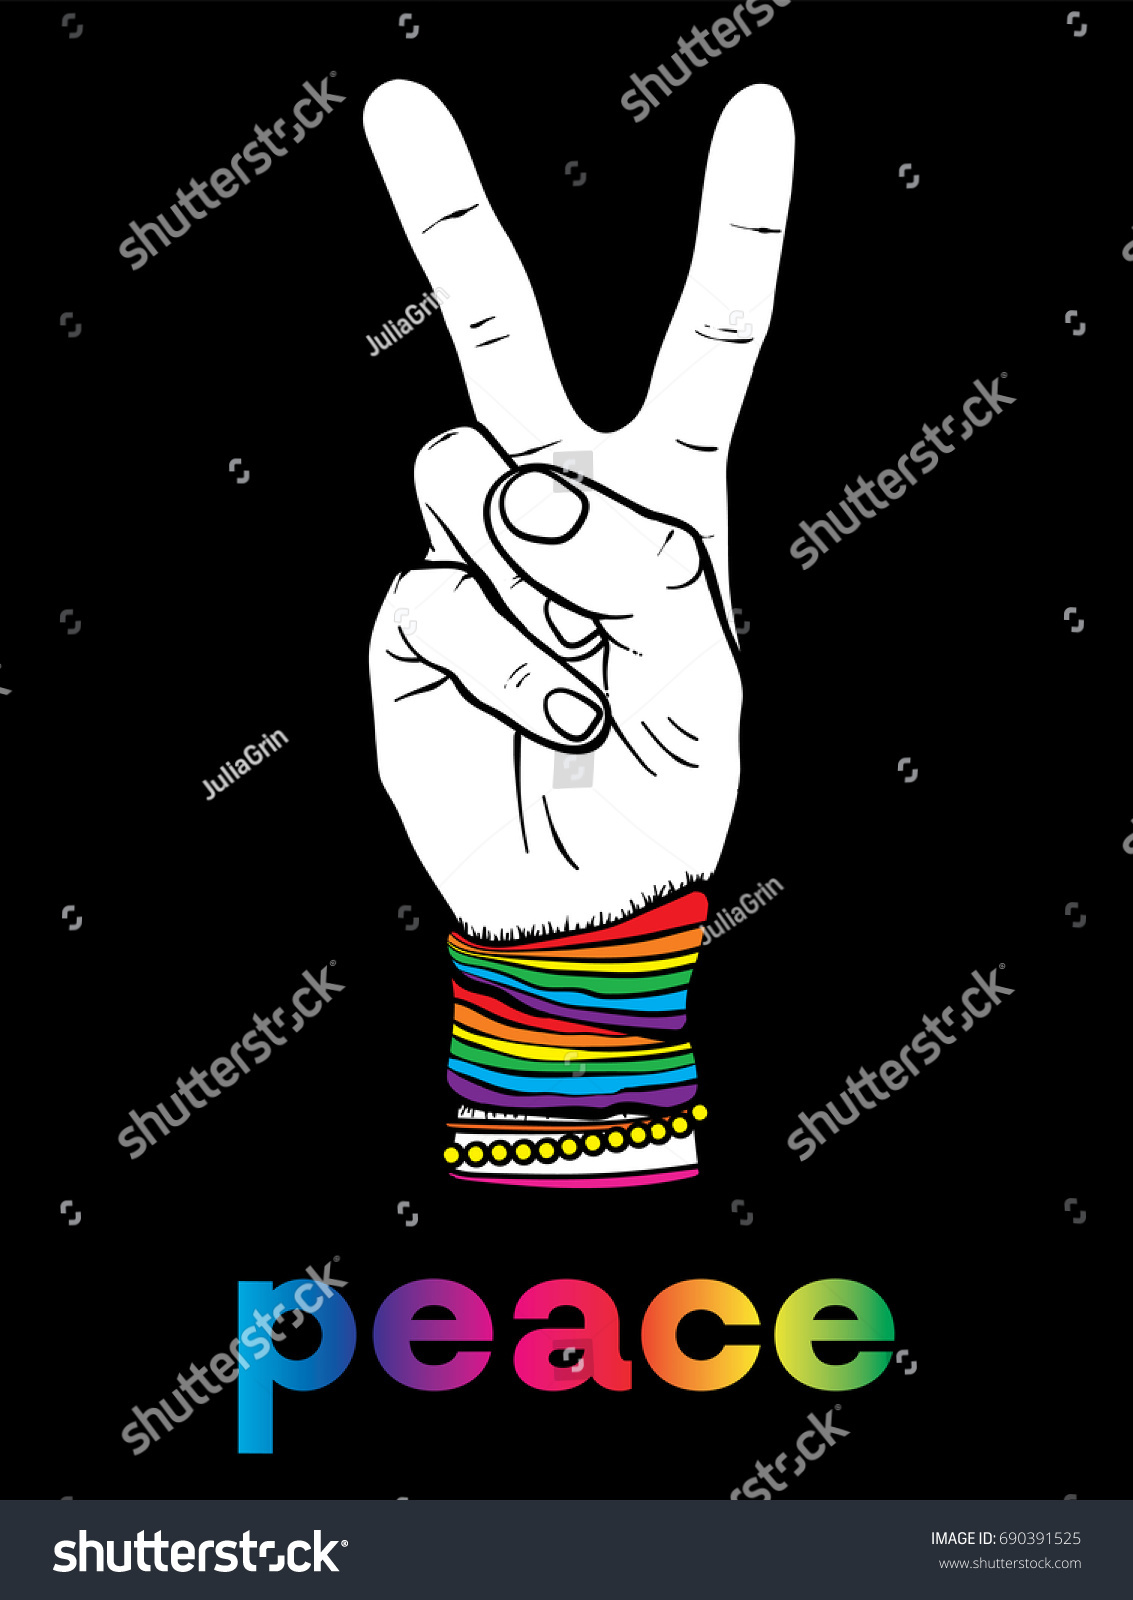 Symbol pacifism hippies hand two fingers stock vector 690391525 symbol pacifism hippies hand two fingers stock vector 690391525 shutterstock biocorpaavc Images